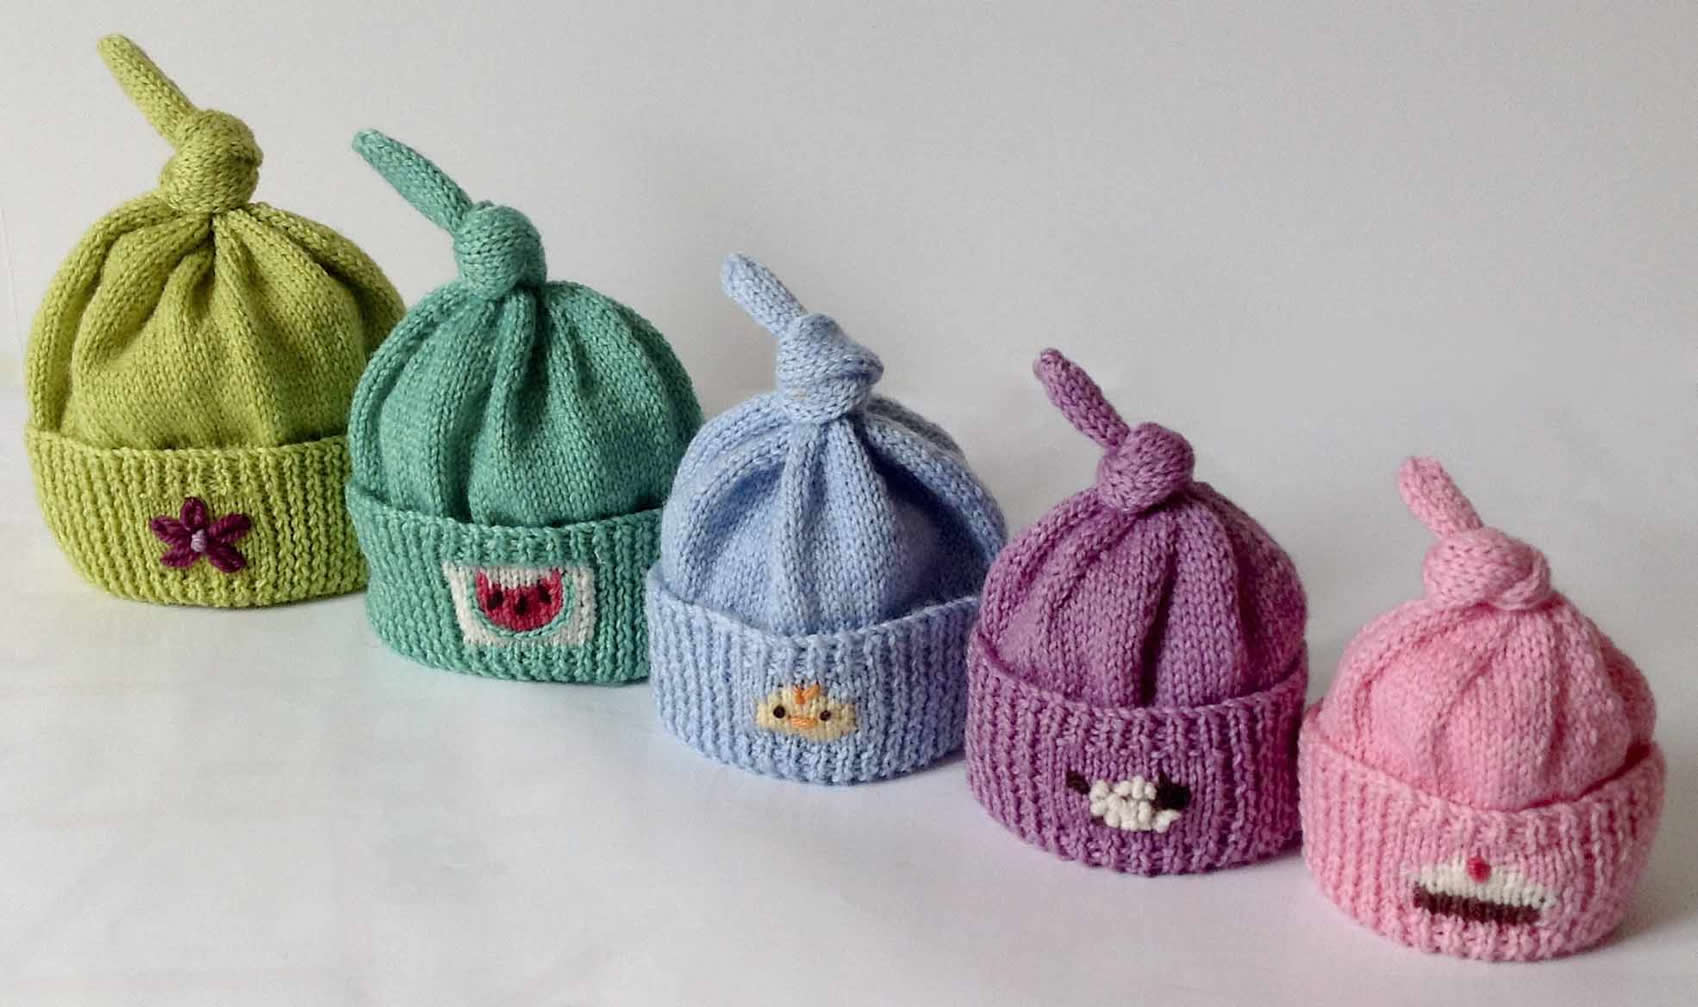 7fc9e05fef1 8 Preemie Knit Hat Patterns - The Funky Stitch